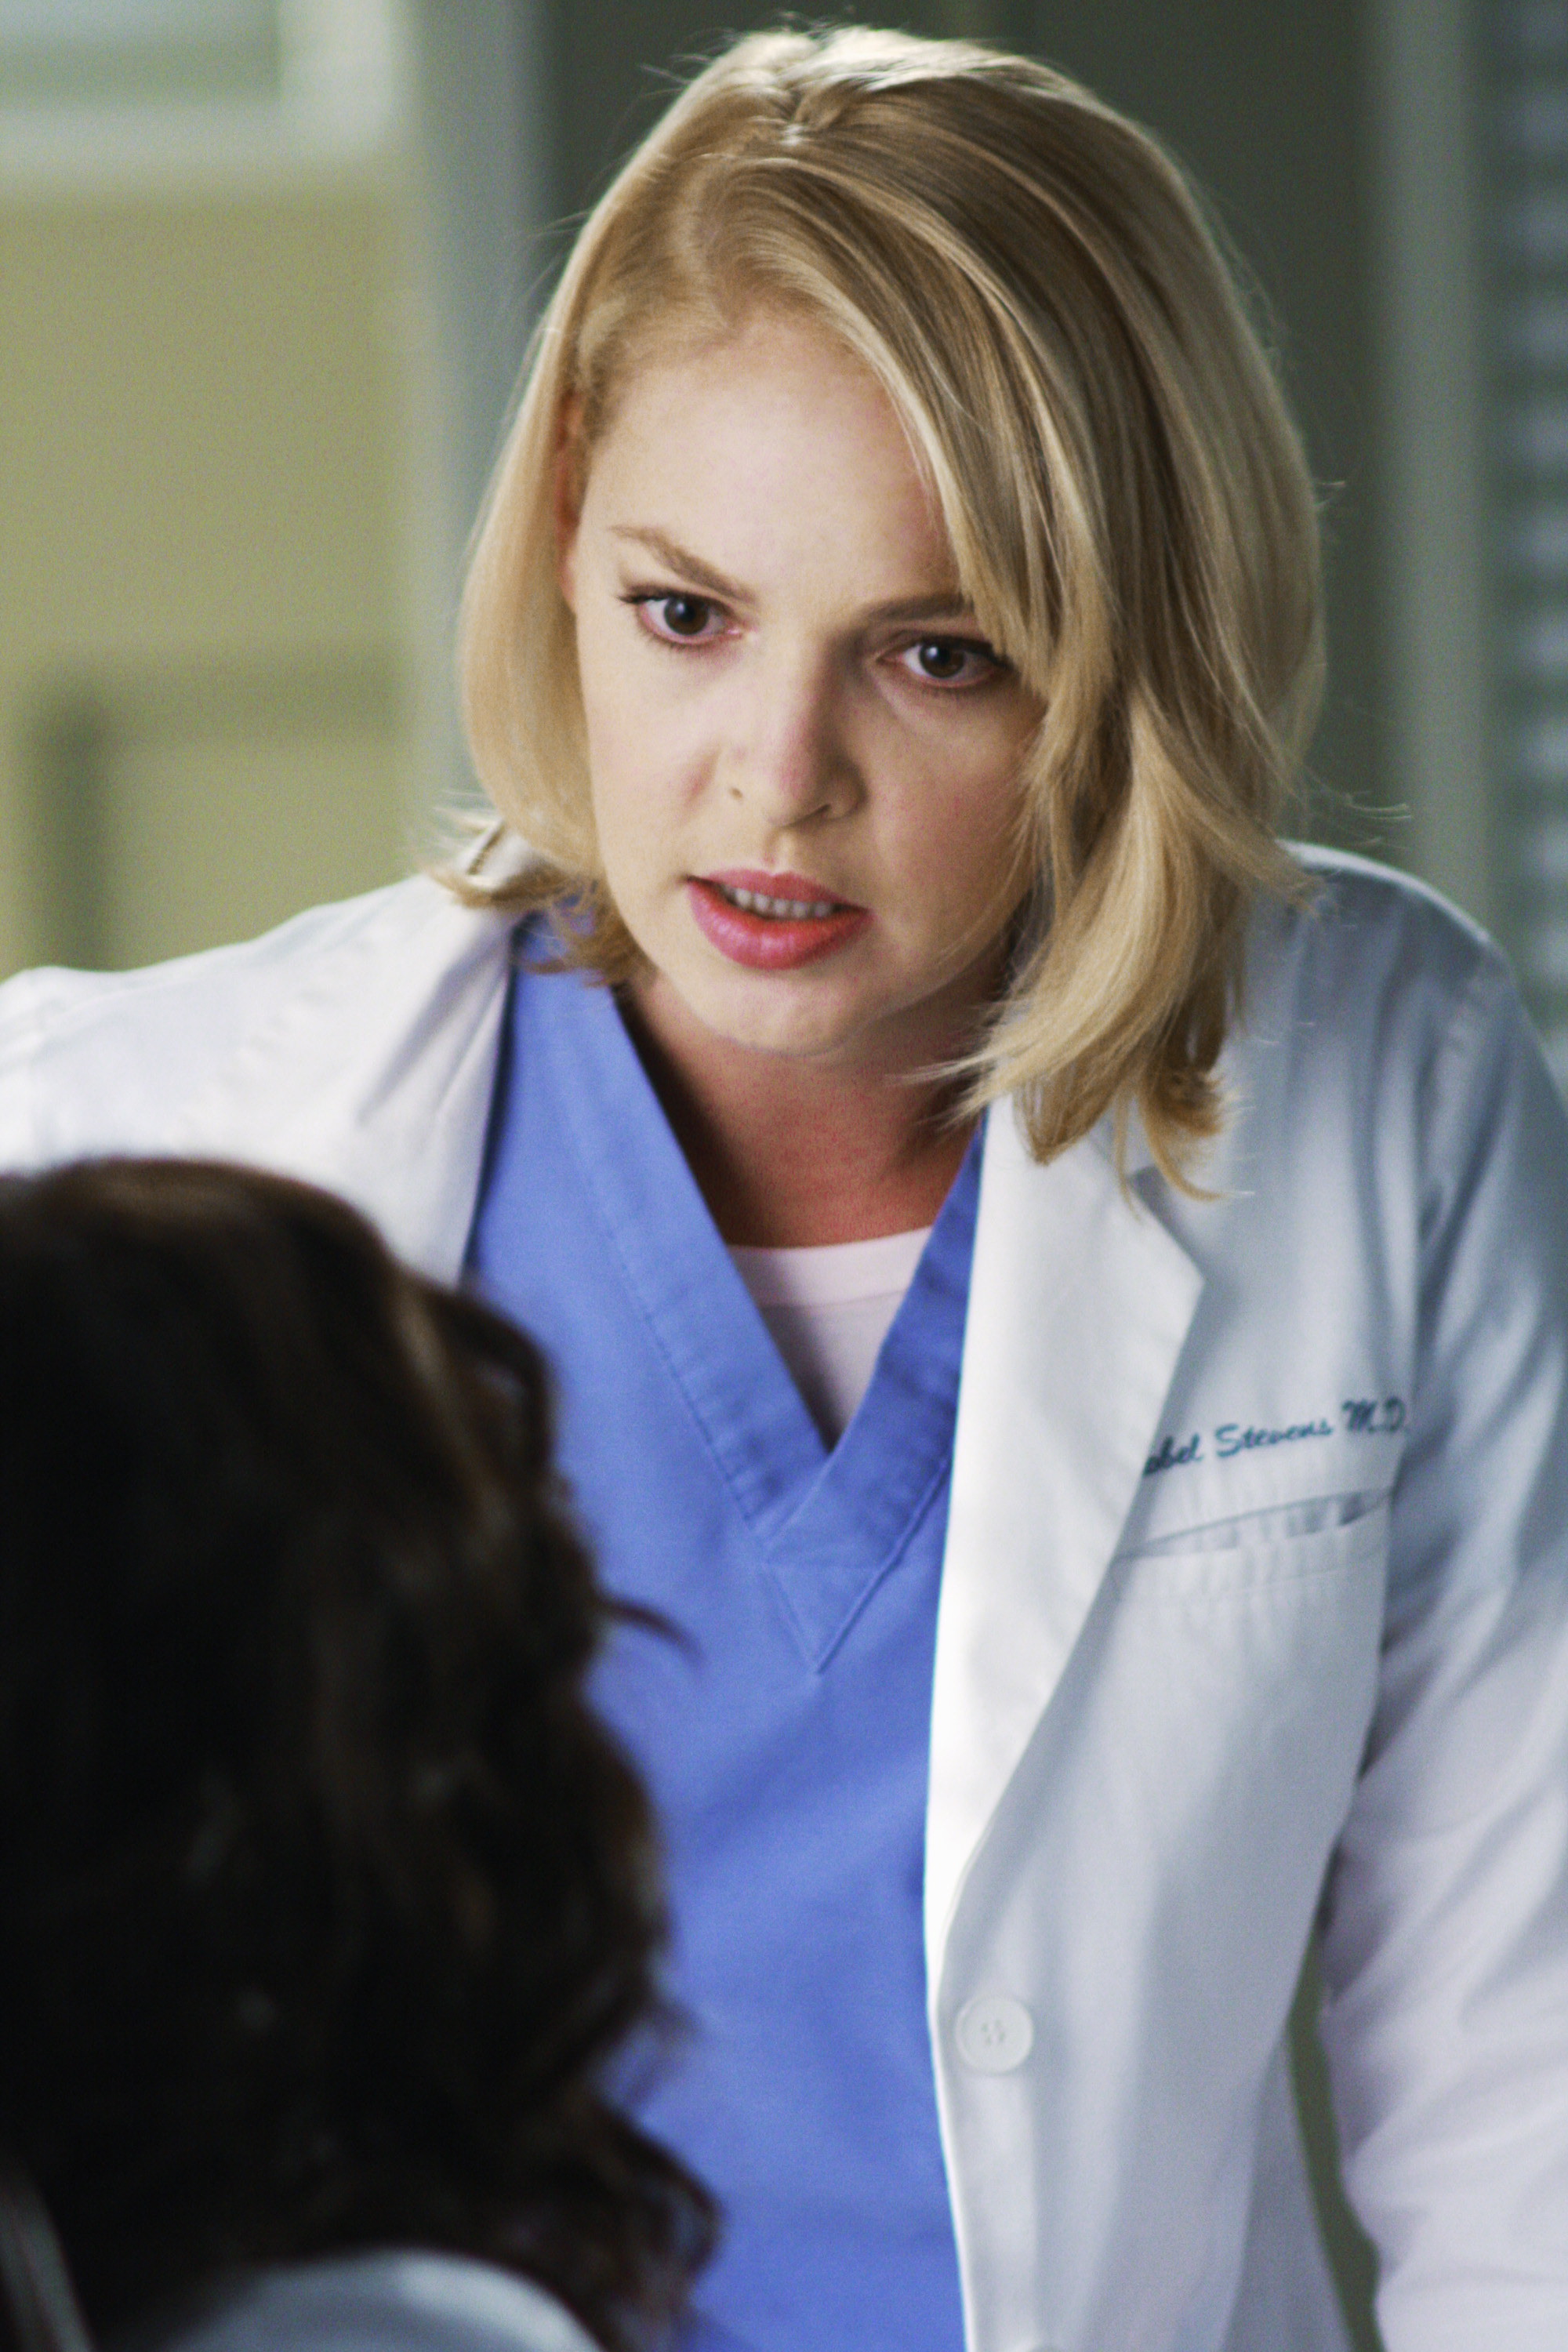 Katherine Heigl, as Izzie Stevens, wears a white lab coat and blue scrubs while talking to a patient in Grey's Anatomy